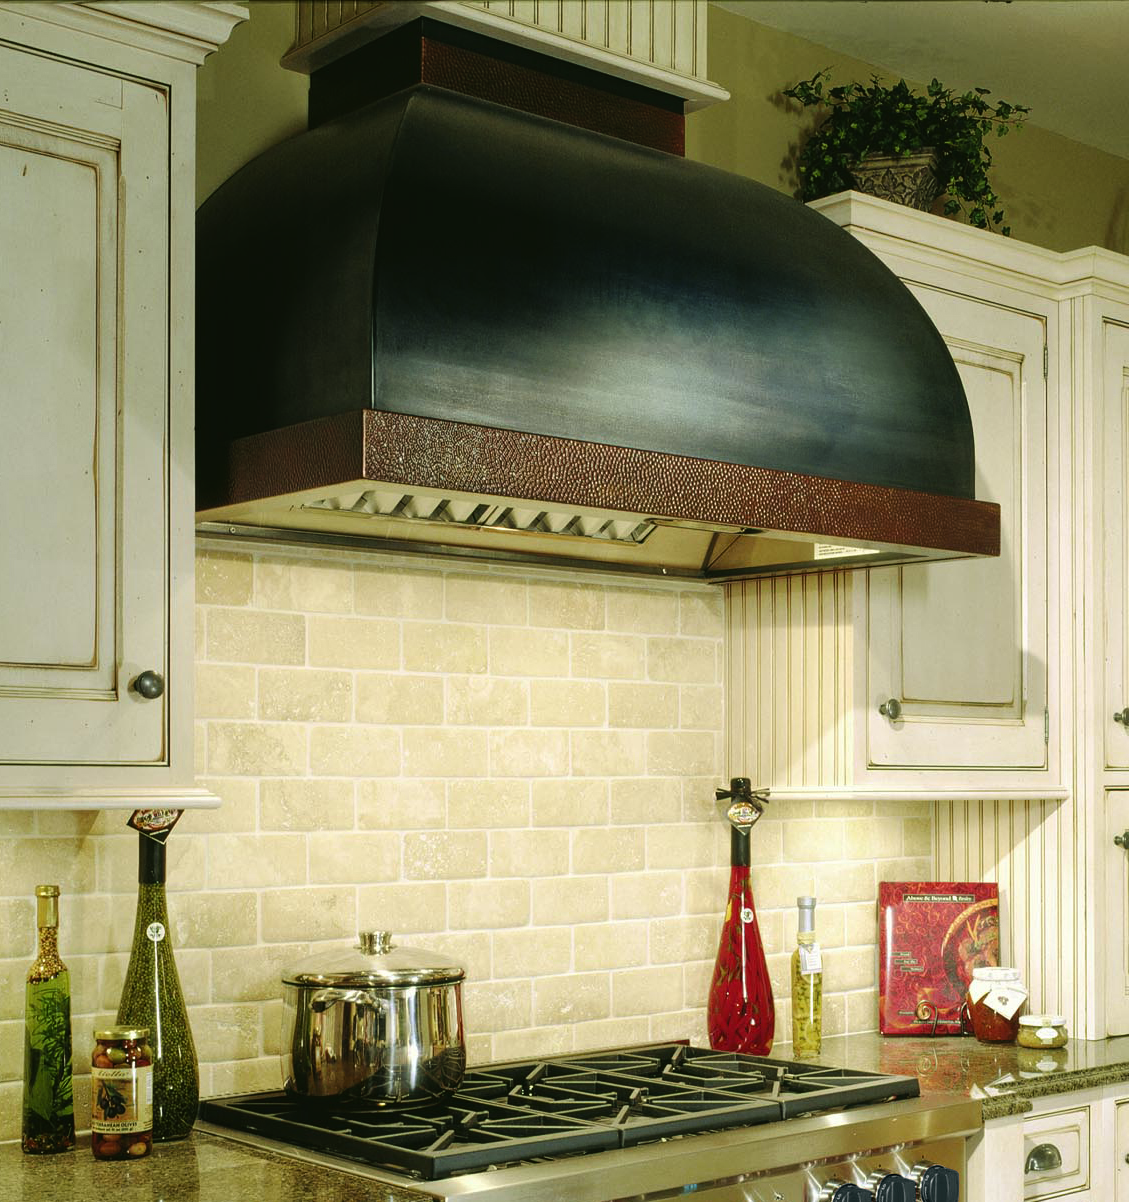 Kitchen Design Range Hood: Let Your Kitchen Hood Vent: Introducing Luxury Designs And